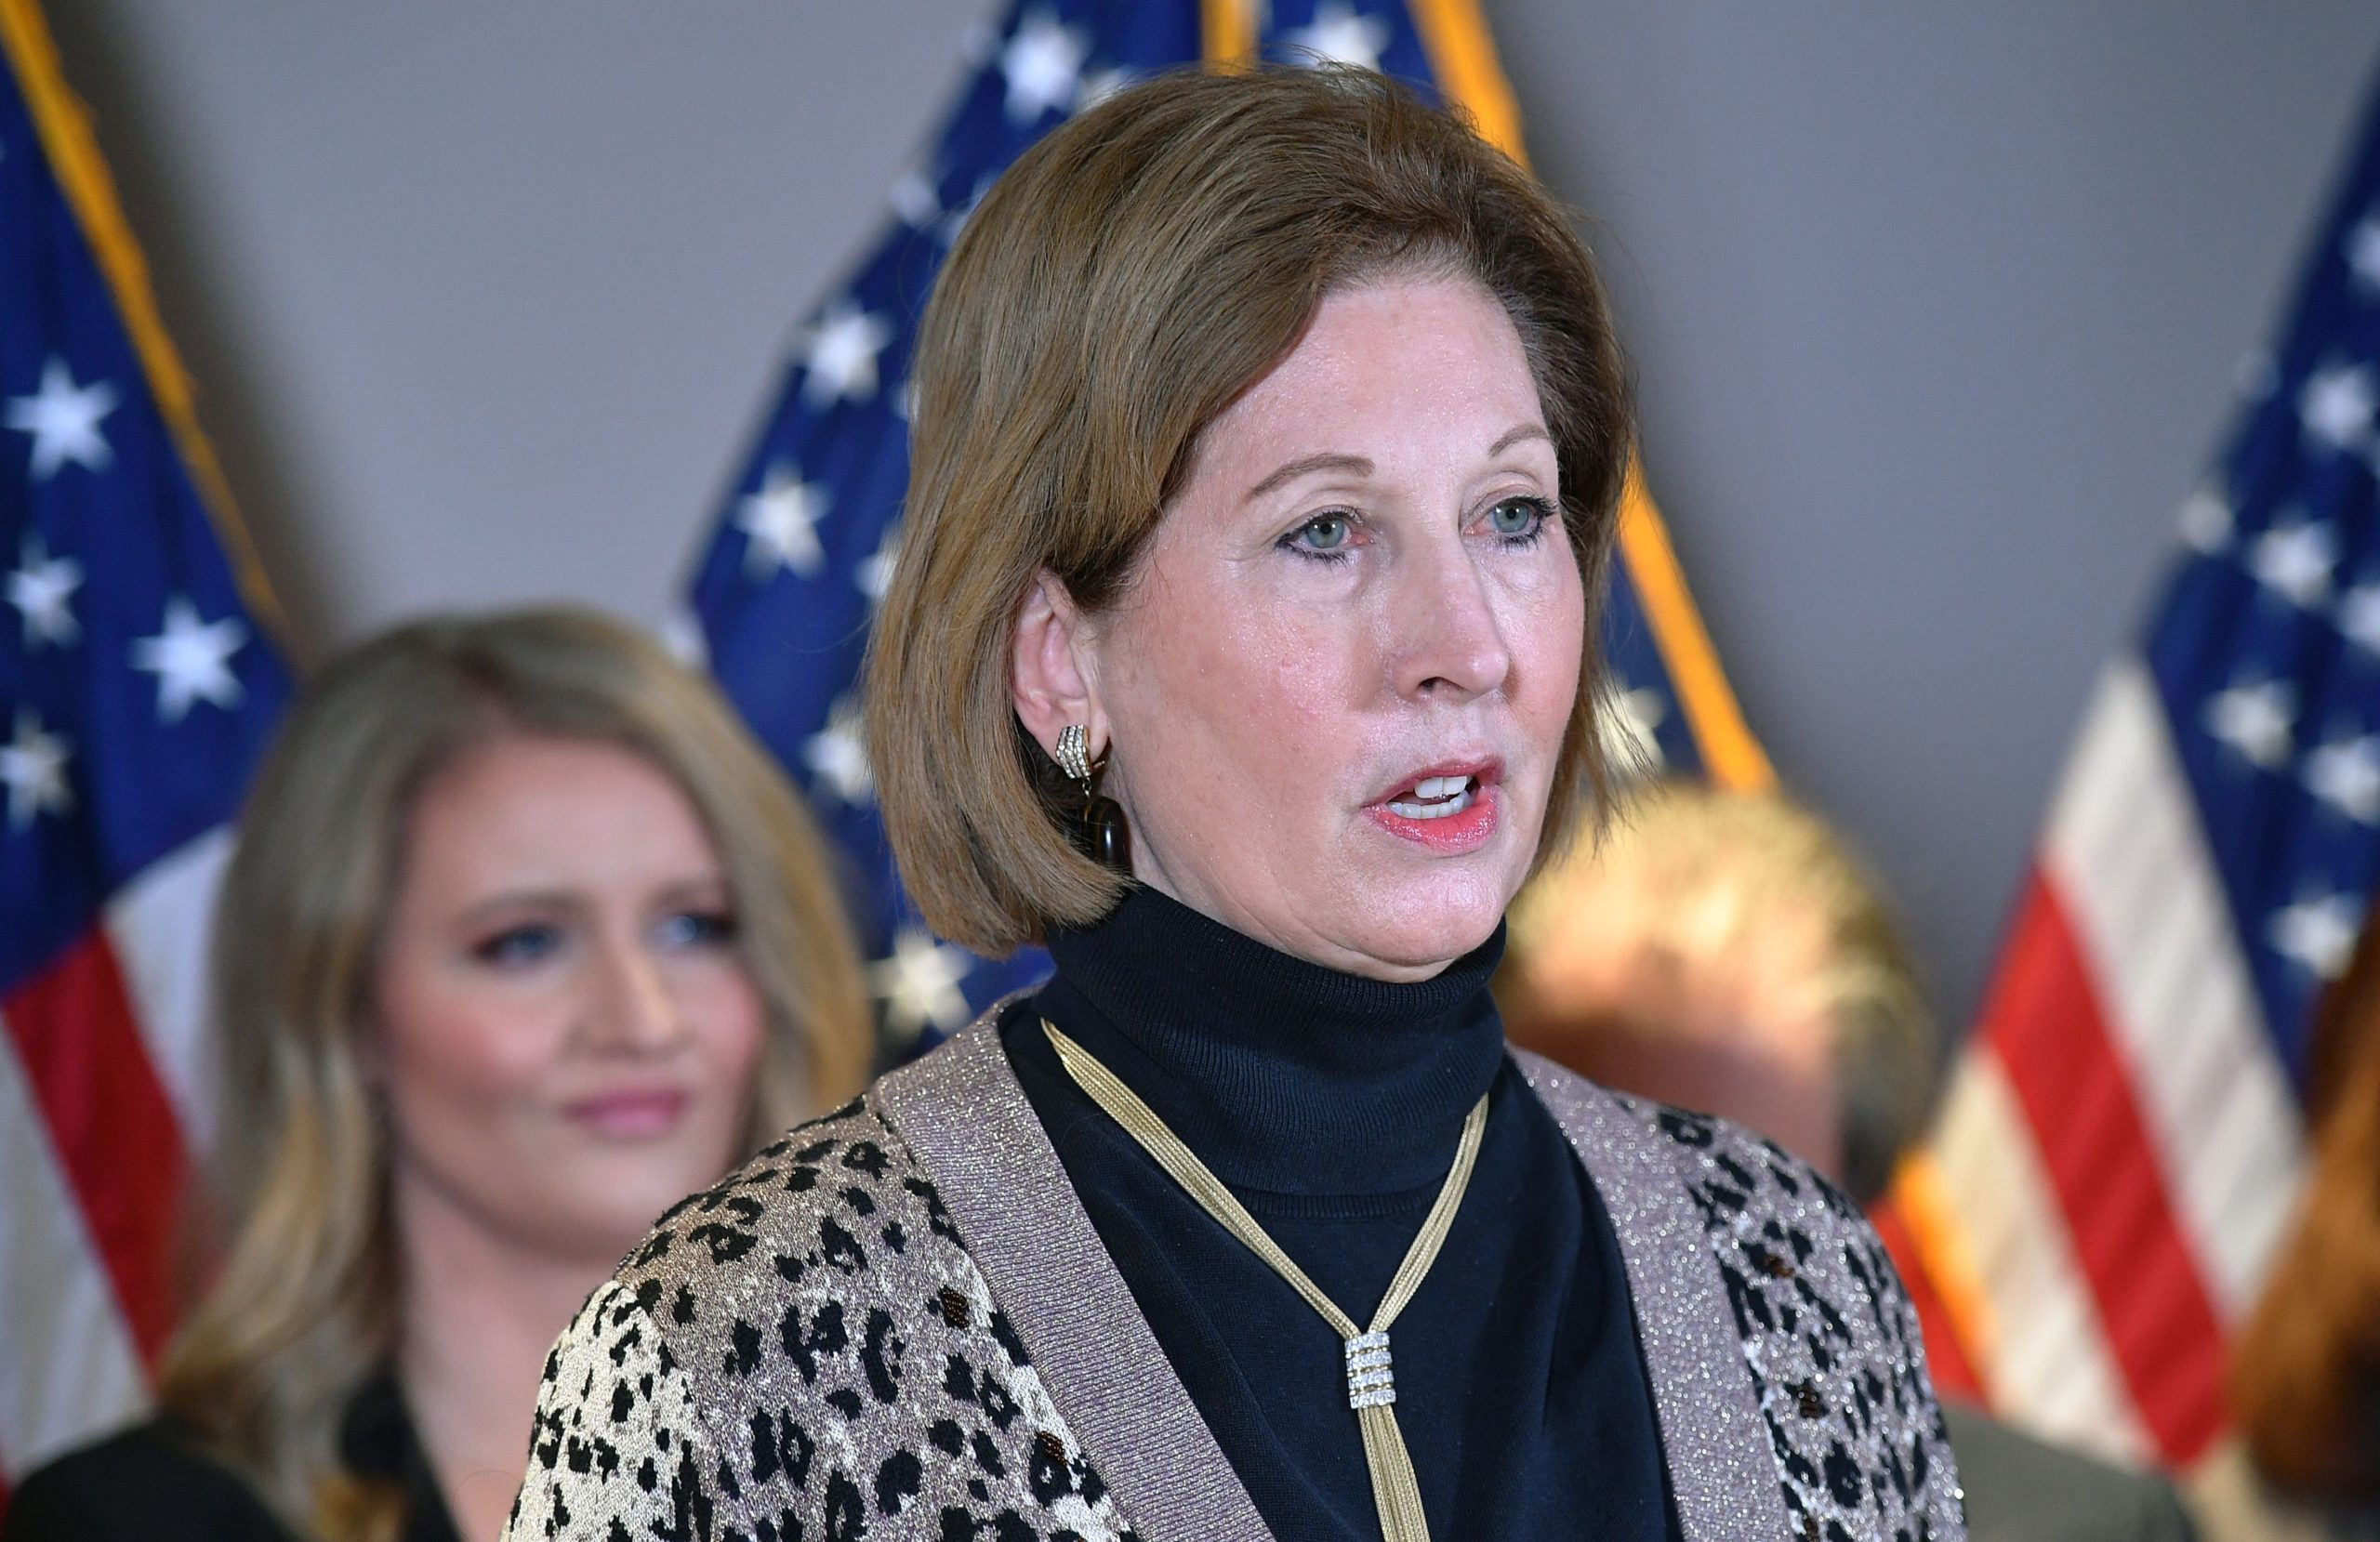 A November 19, 2020 photo shows Sidney Powell speaking during a press conference at the Republican National Committee headquarters in Washington, DC. - US President Donald Trump's personal lawyer Rudy Giuliani and campaign lawyer Jenna Ellis reportedly said that Powell is not a member of the Trump legal team. (Photo by MANDEL NGAN/AFP via Getty Images)